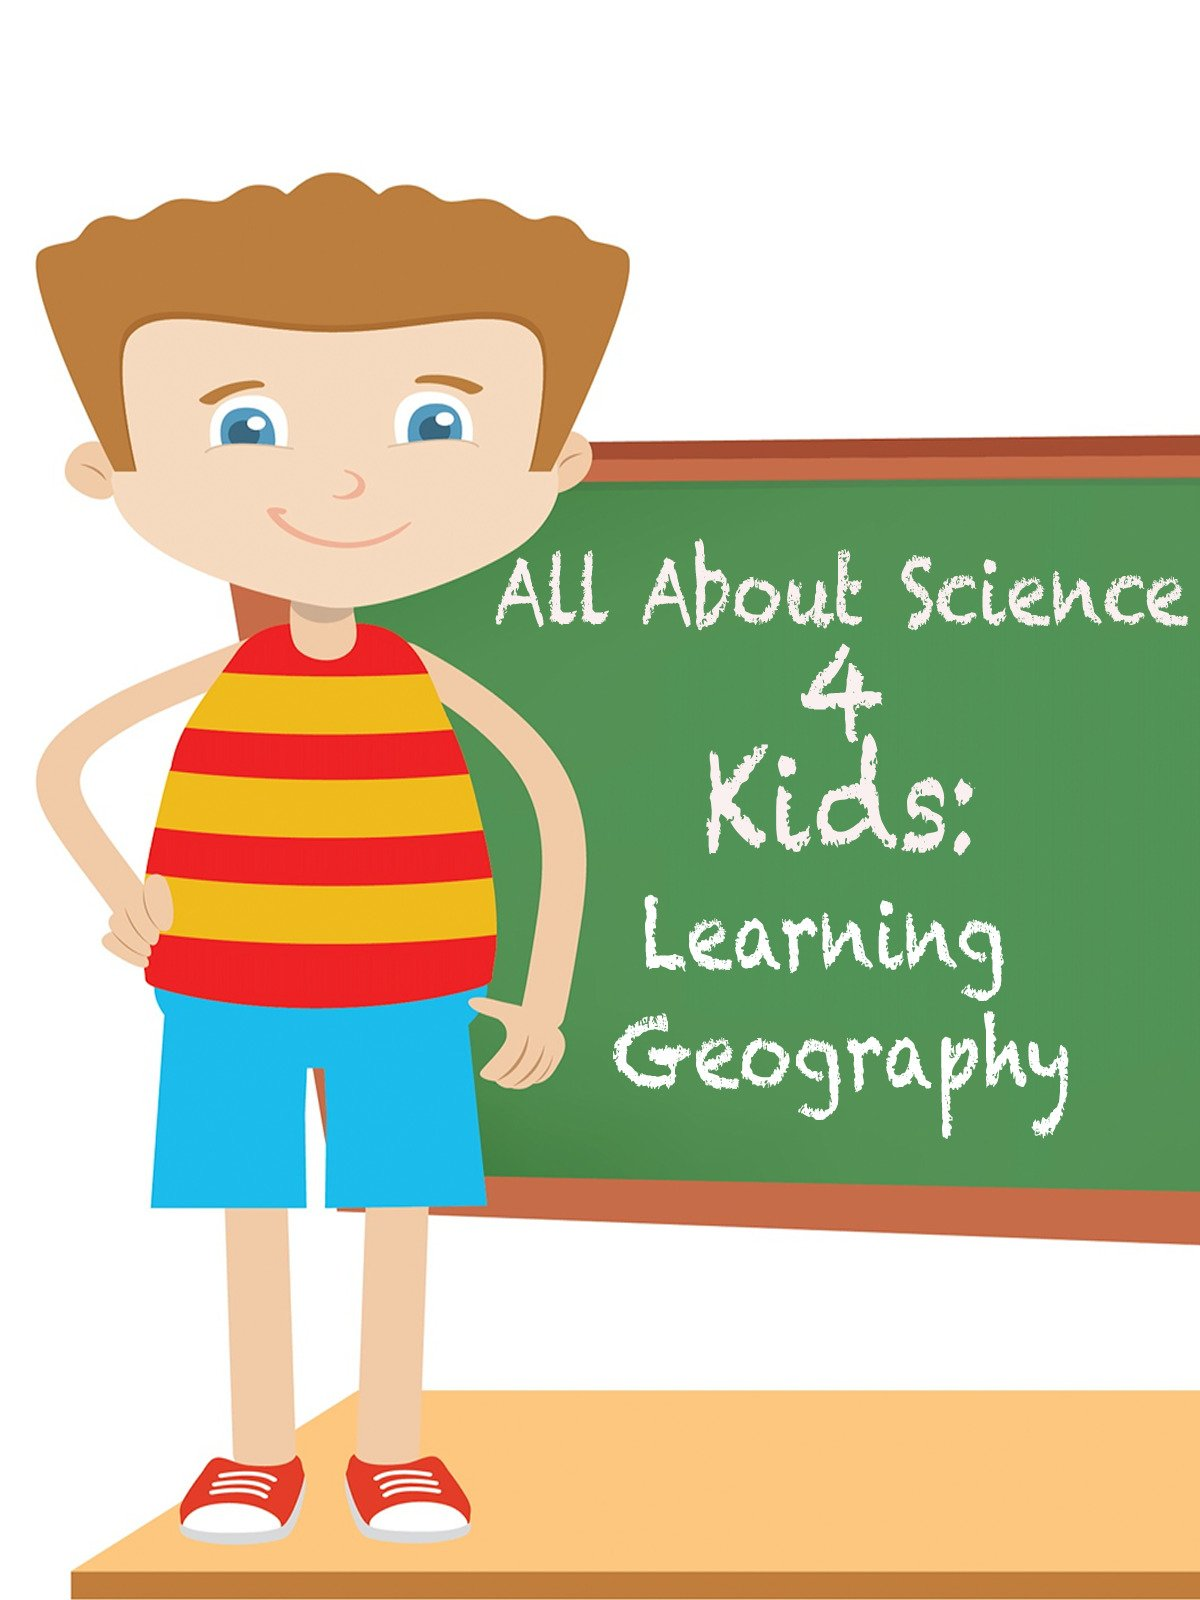 All About Science 4 Kids: Learning Geography